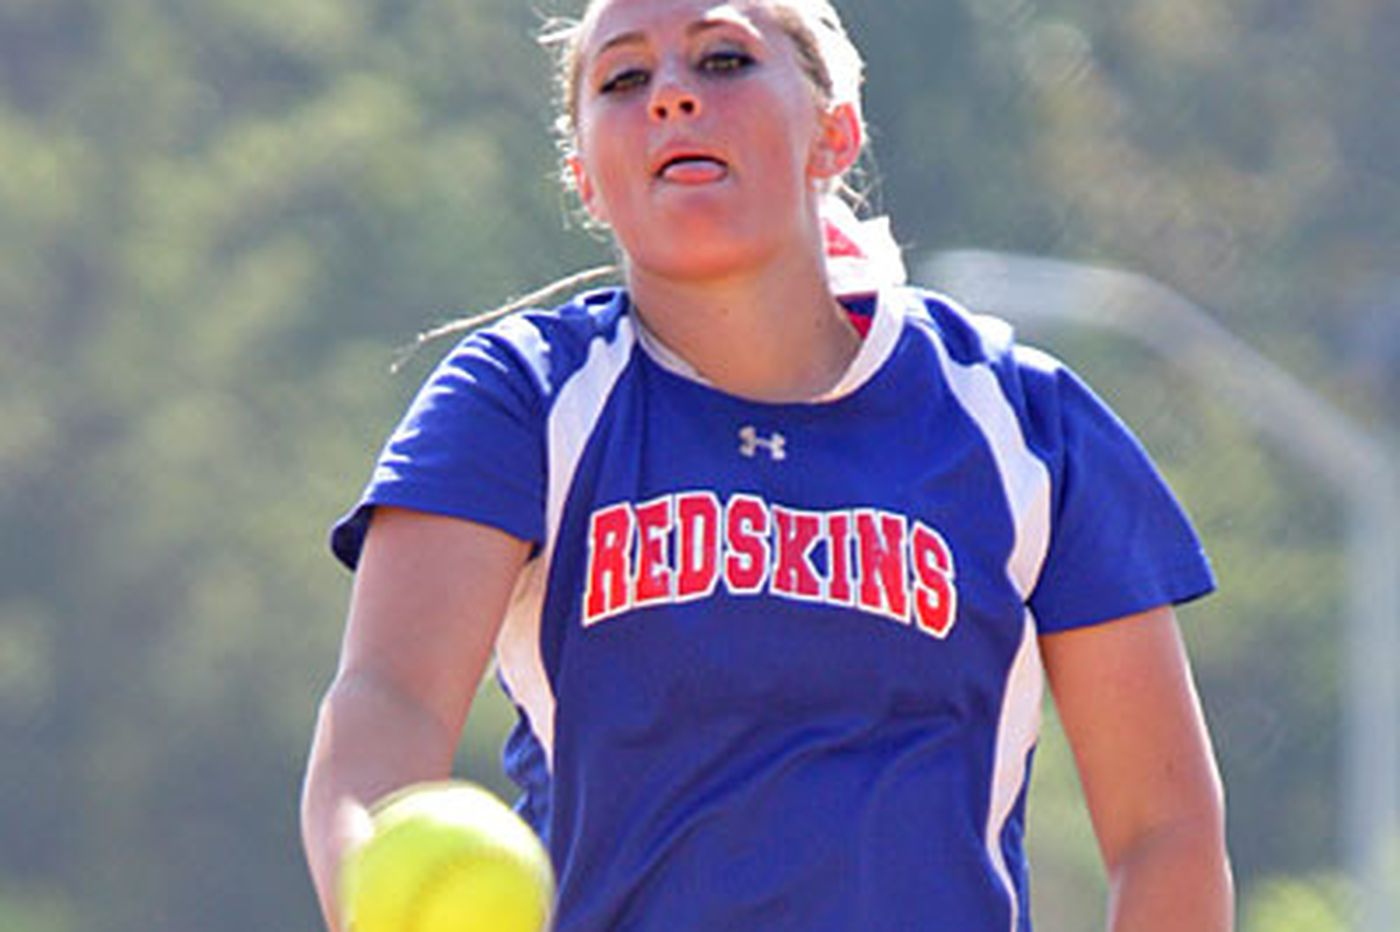 Neshaminy's Quense enjoys her role as pitcher